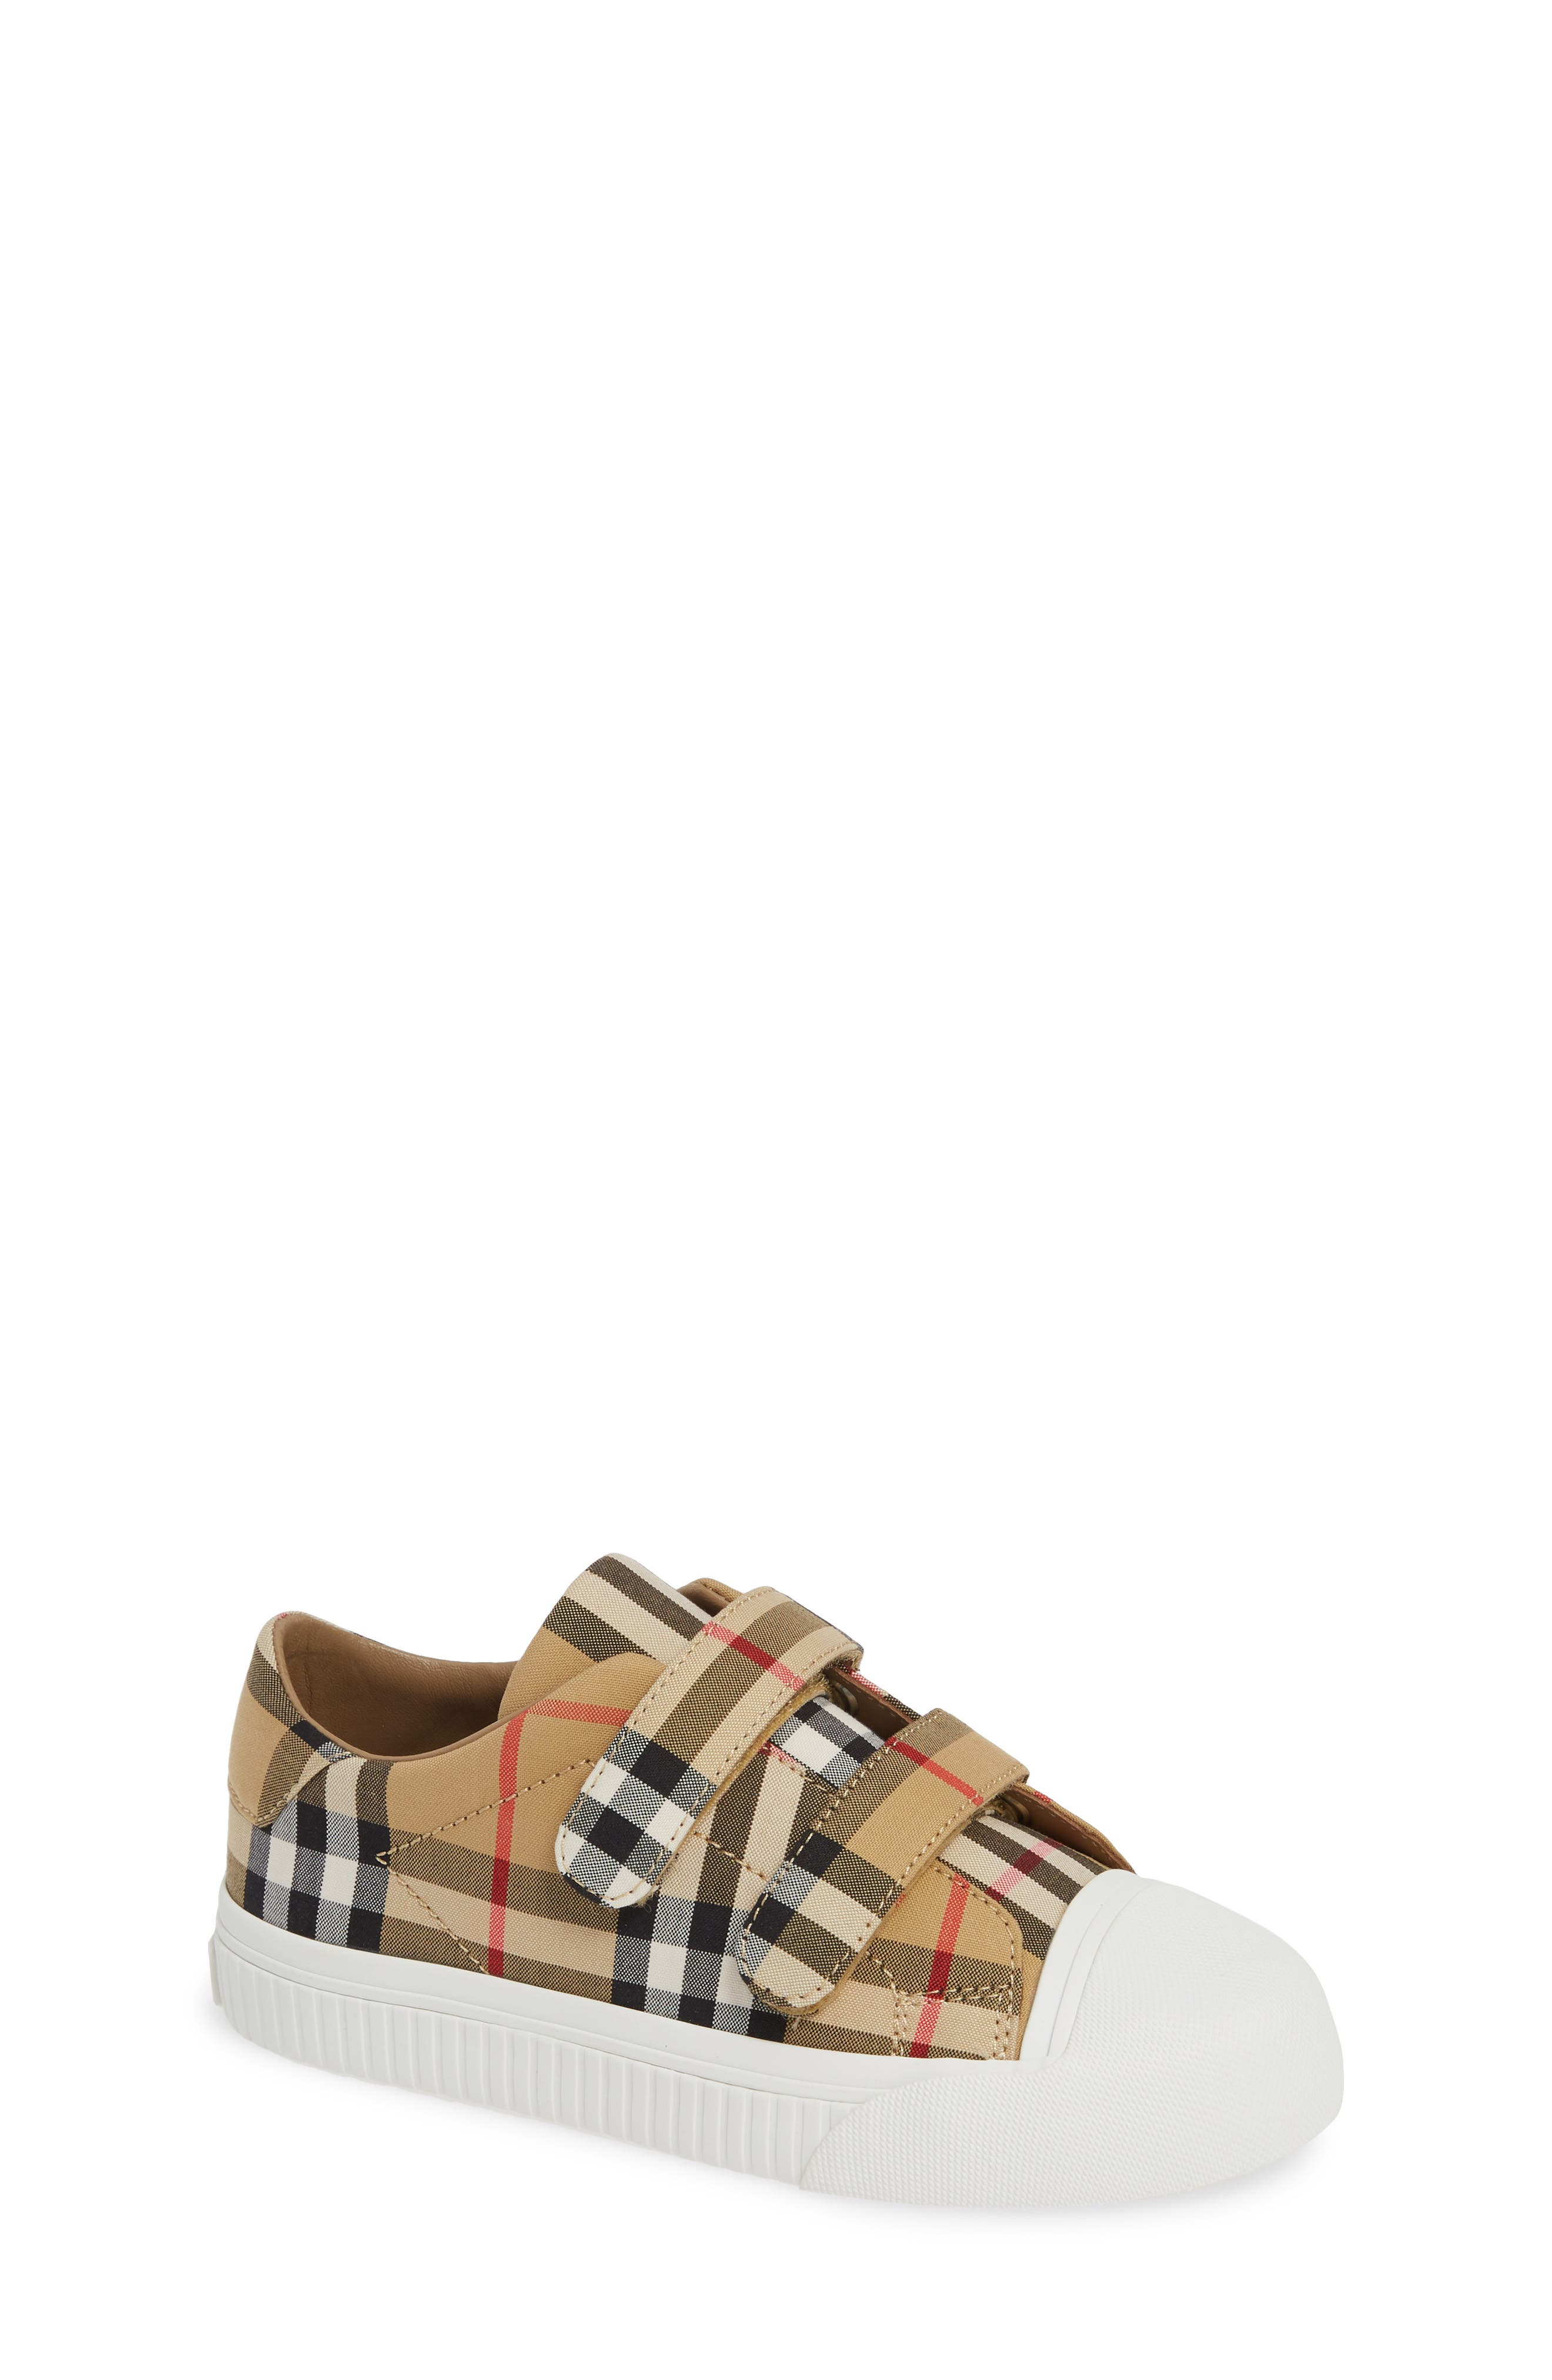 BURBERRY, Belside Sneaker, Main thumbnail 1, color, ANTIQUE YELLOW-OPTIC WHITE